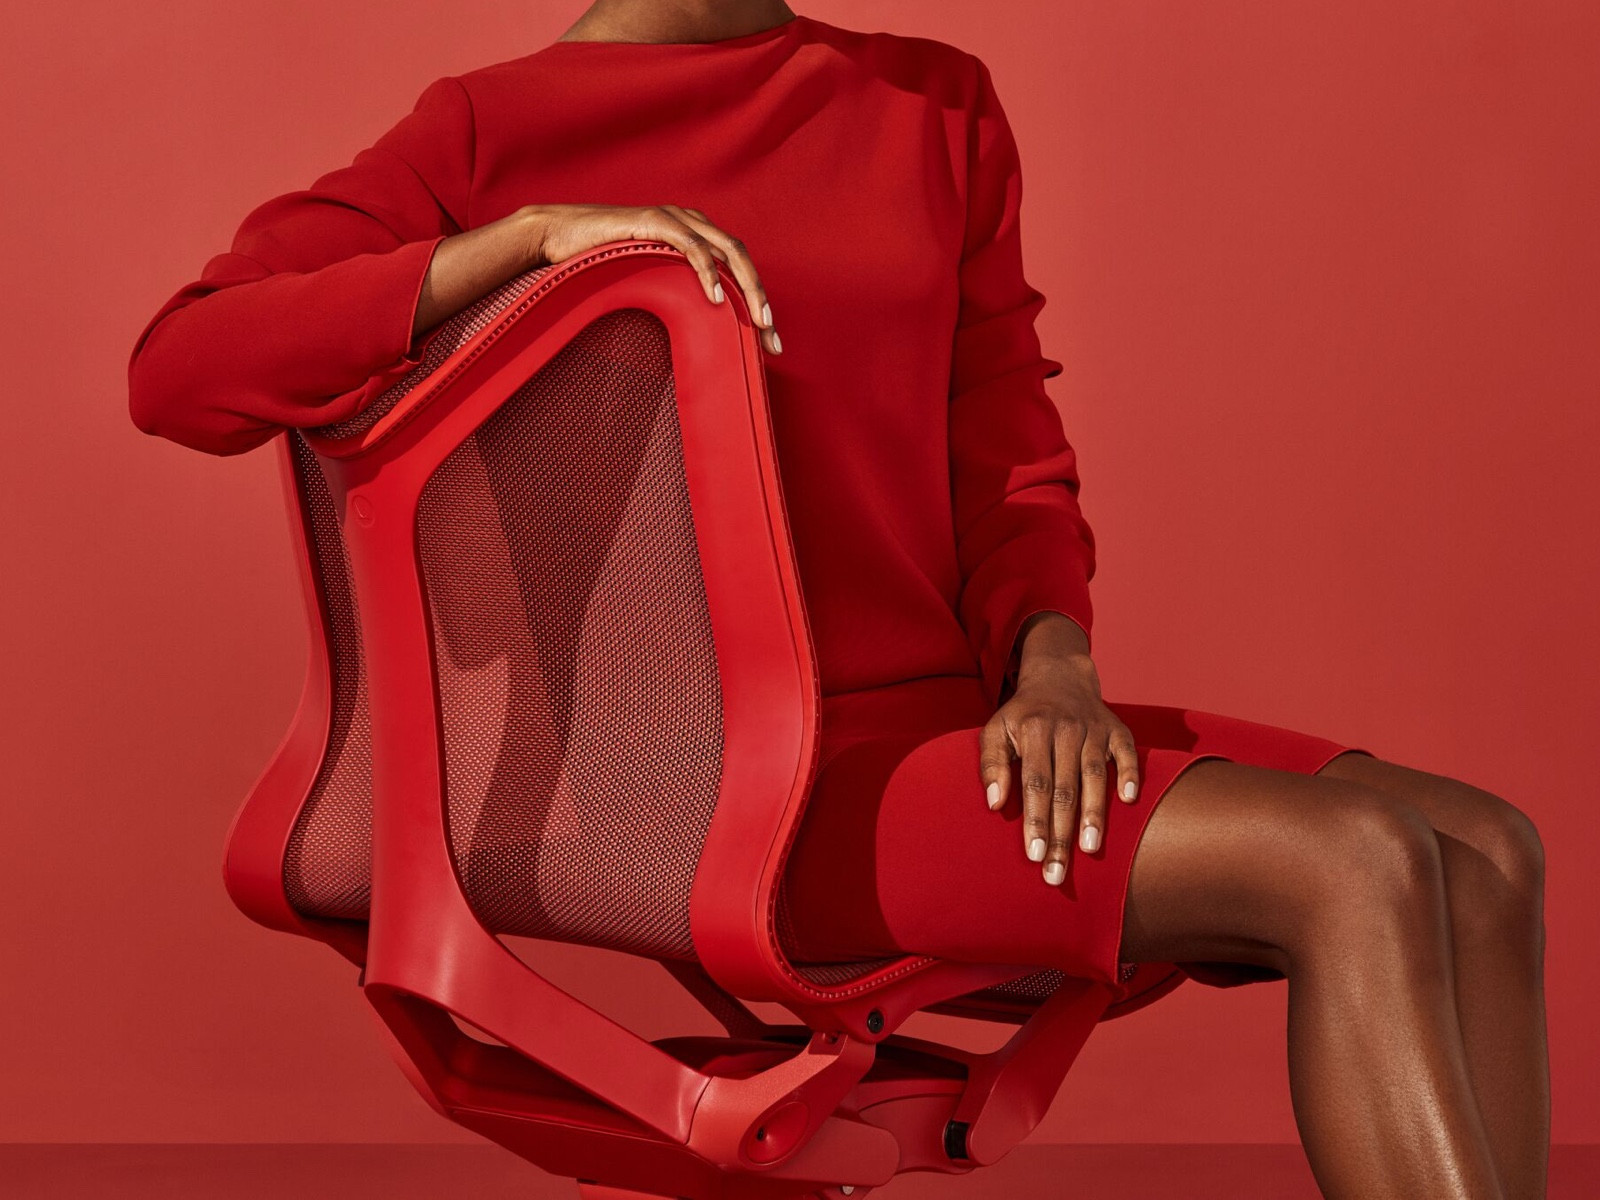 A woman in a red dress sits in a low-back Cosm Chair in Canyon red.